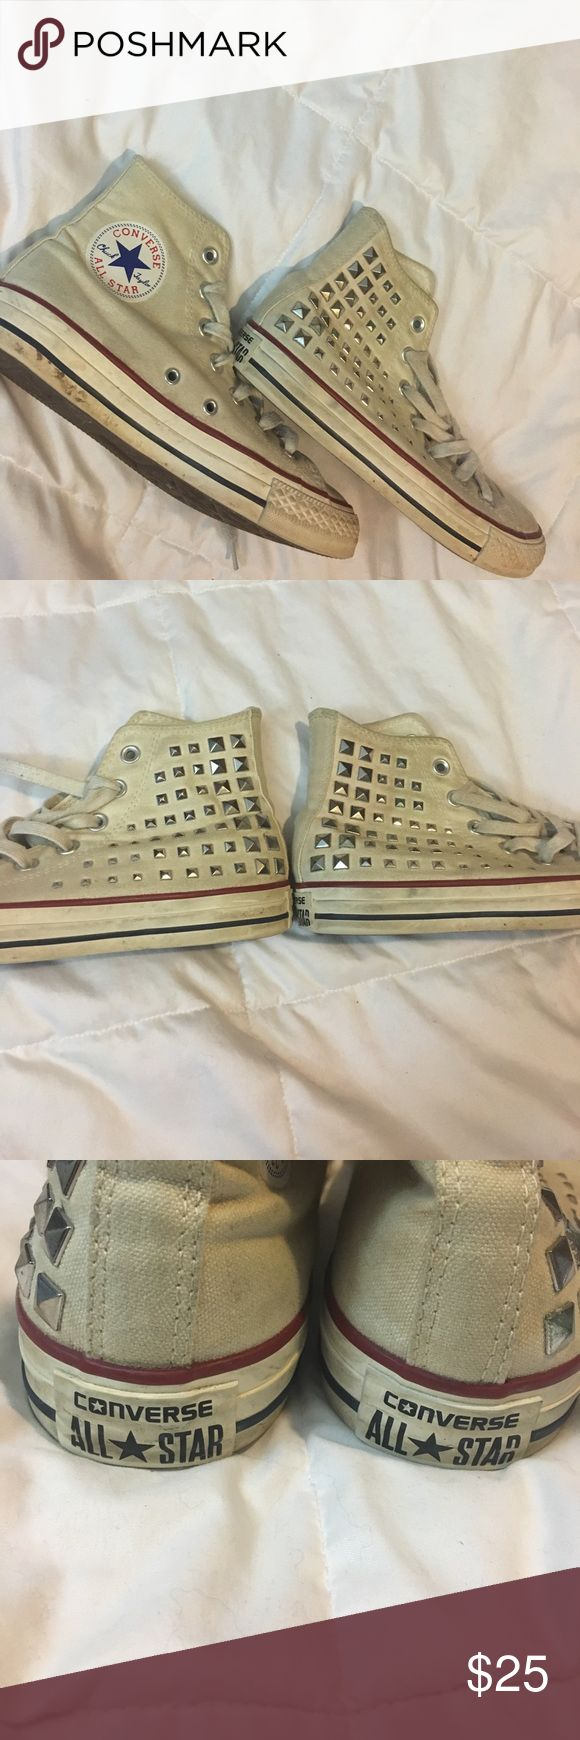 Studded Cream Converse These Converse are cream in color and I bought them at a Converse Outlet store. They were studded when I bought them and are in great condition. I will clean the toes and edges before shipping. They are meant to have a vintage look. No damage and no rhinestones missing. This is a dog friendly and smoke-free house. Converse Shoes